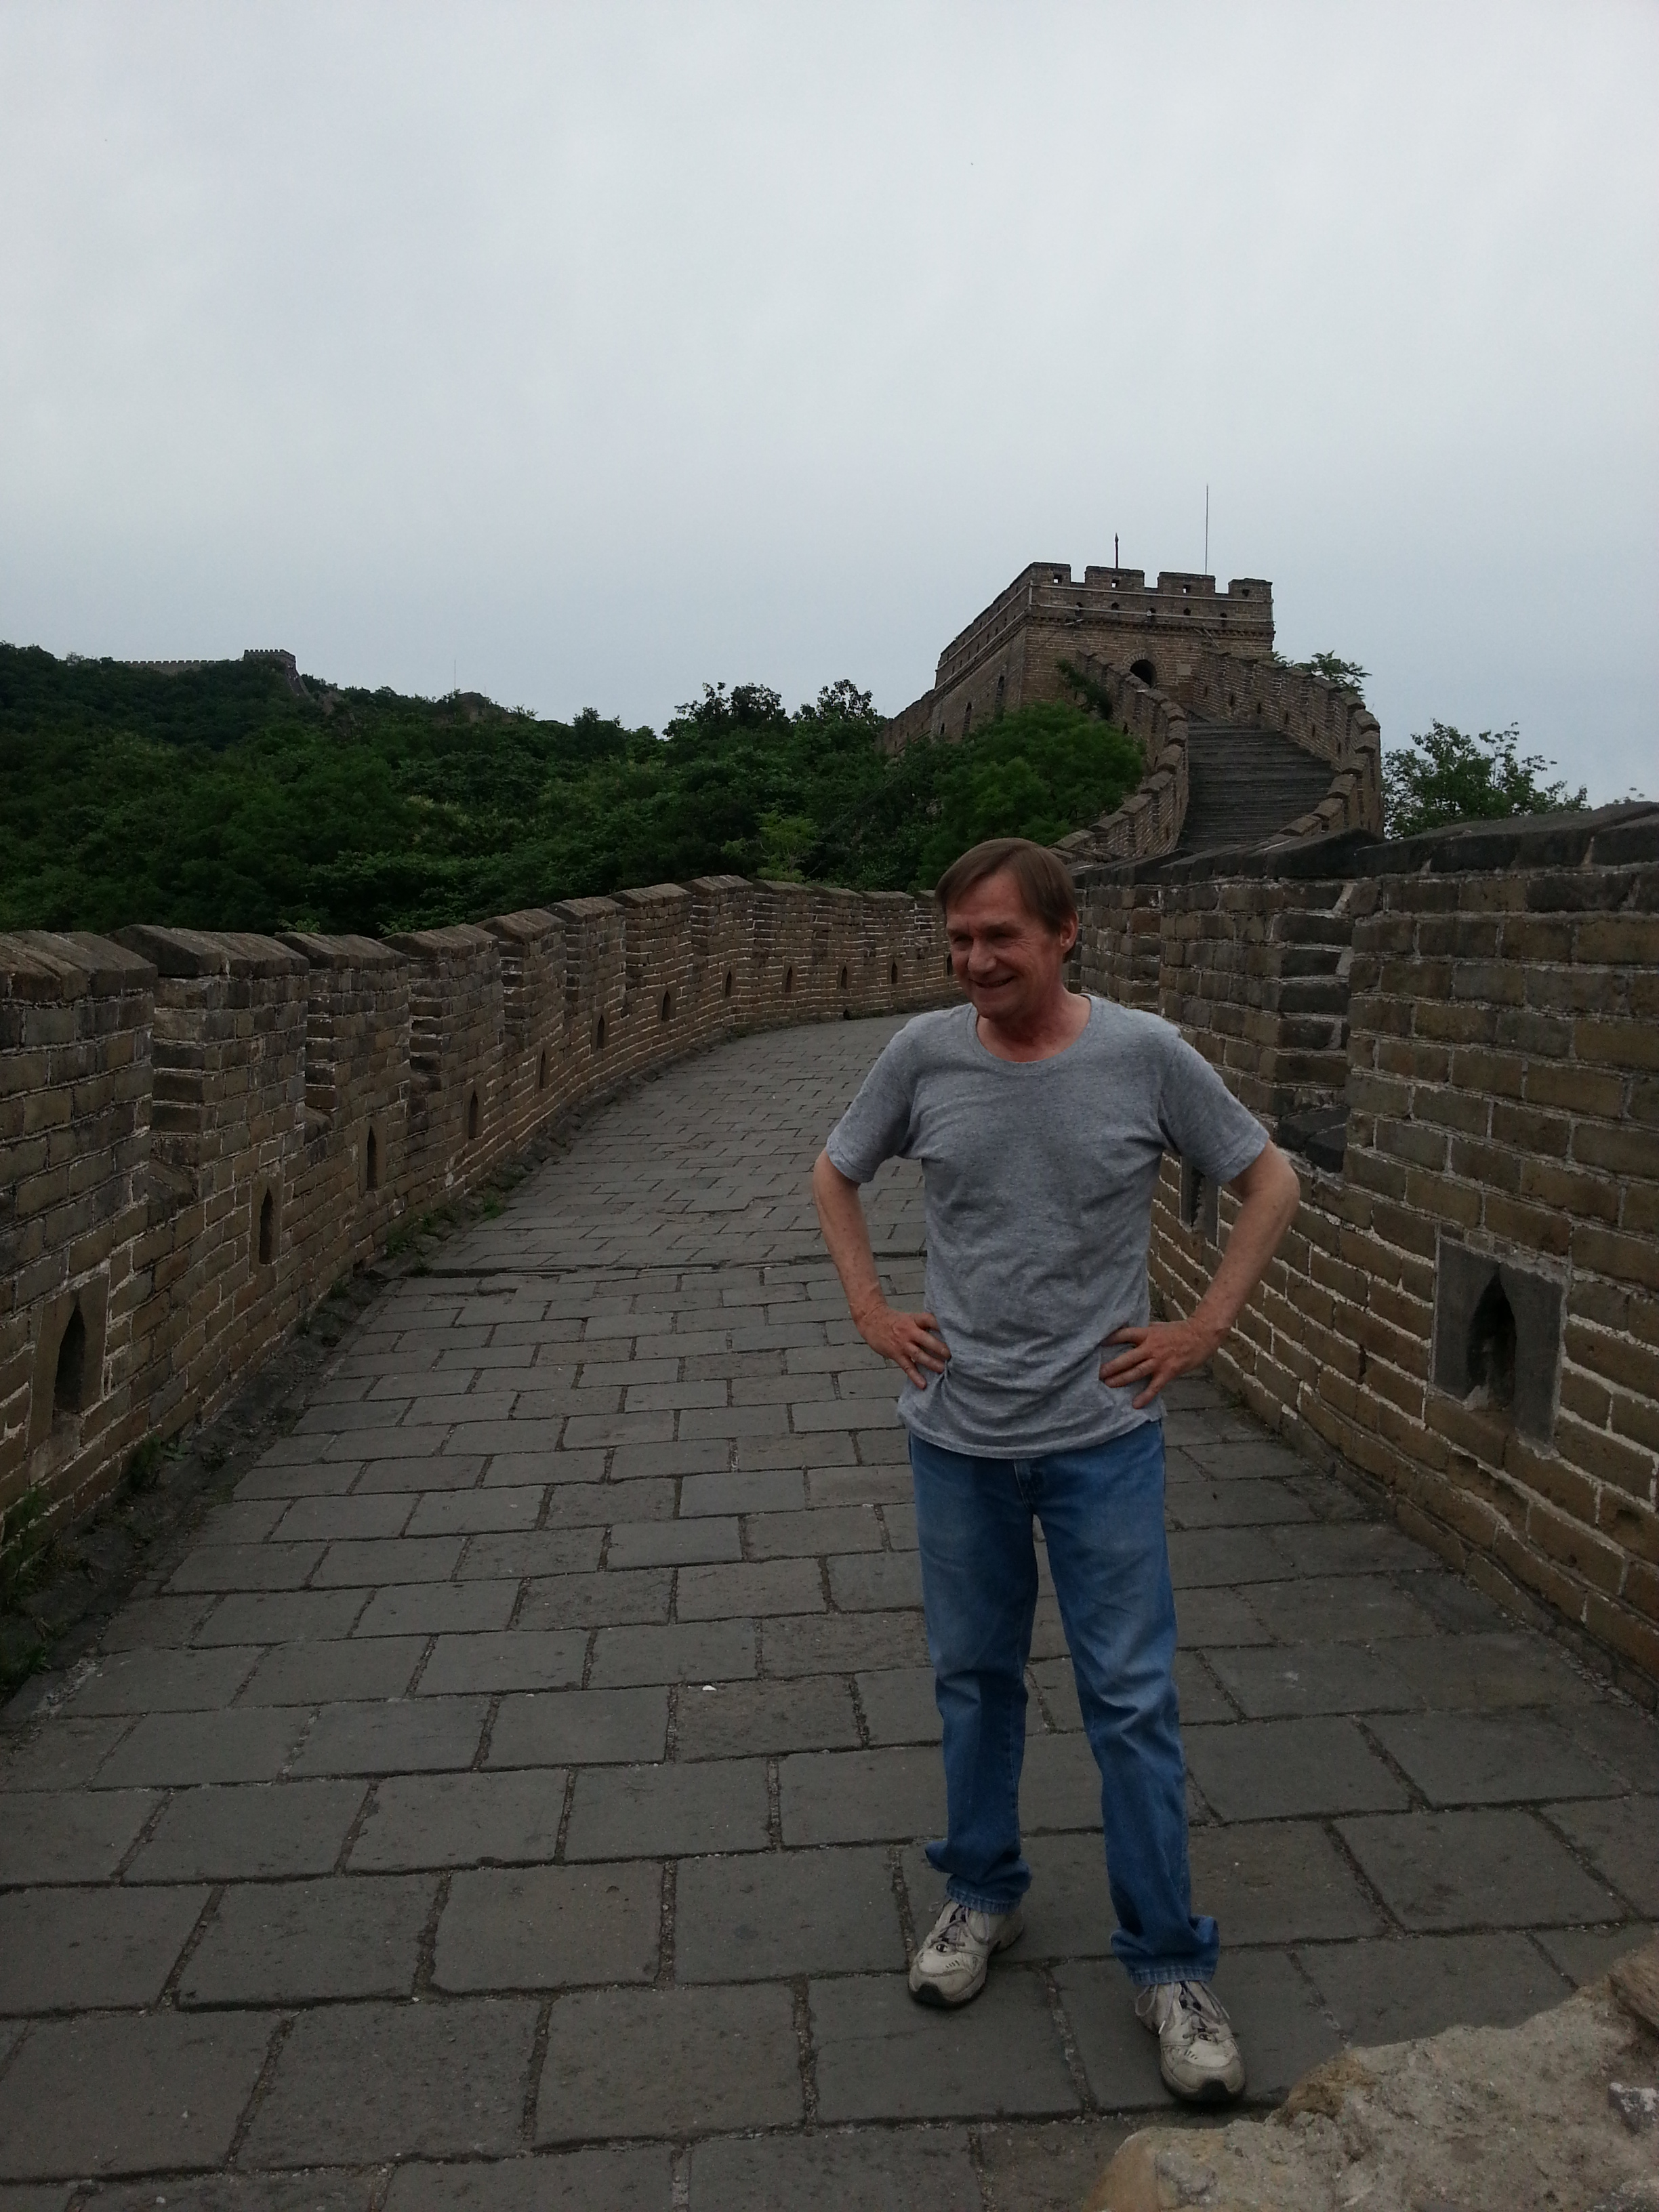 Denis at the Great Wall